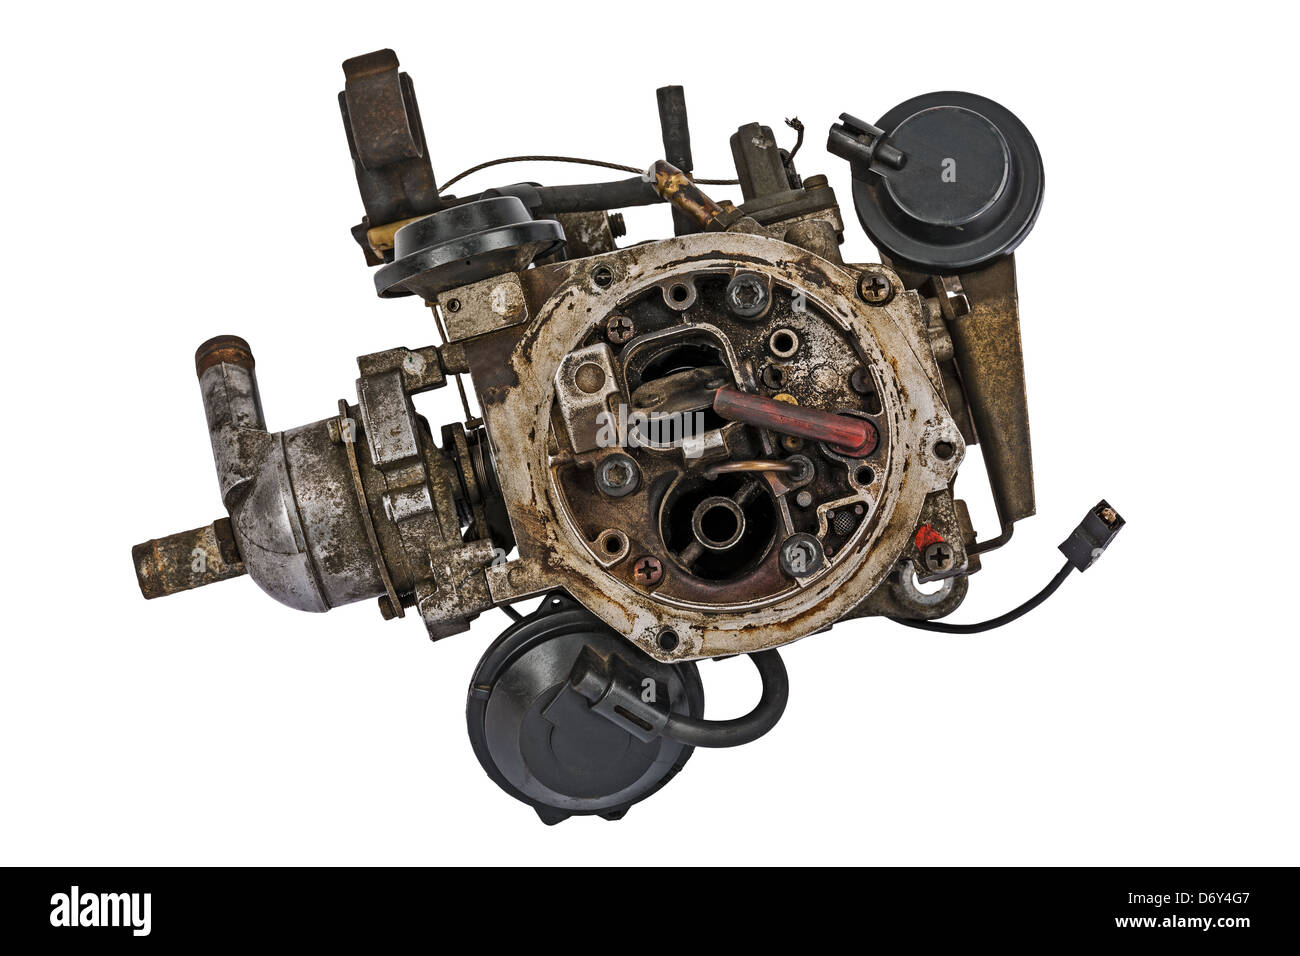 Worn out carburetor - Stock Image